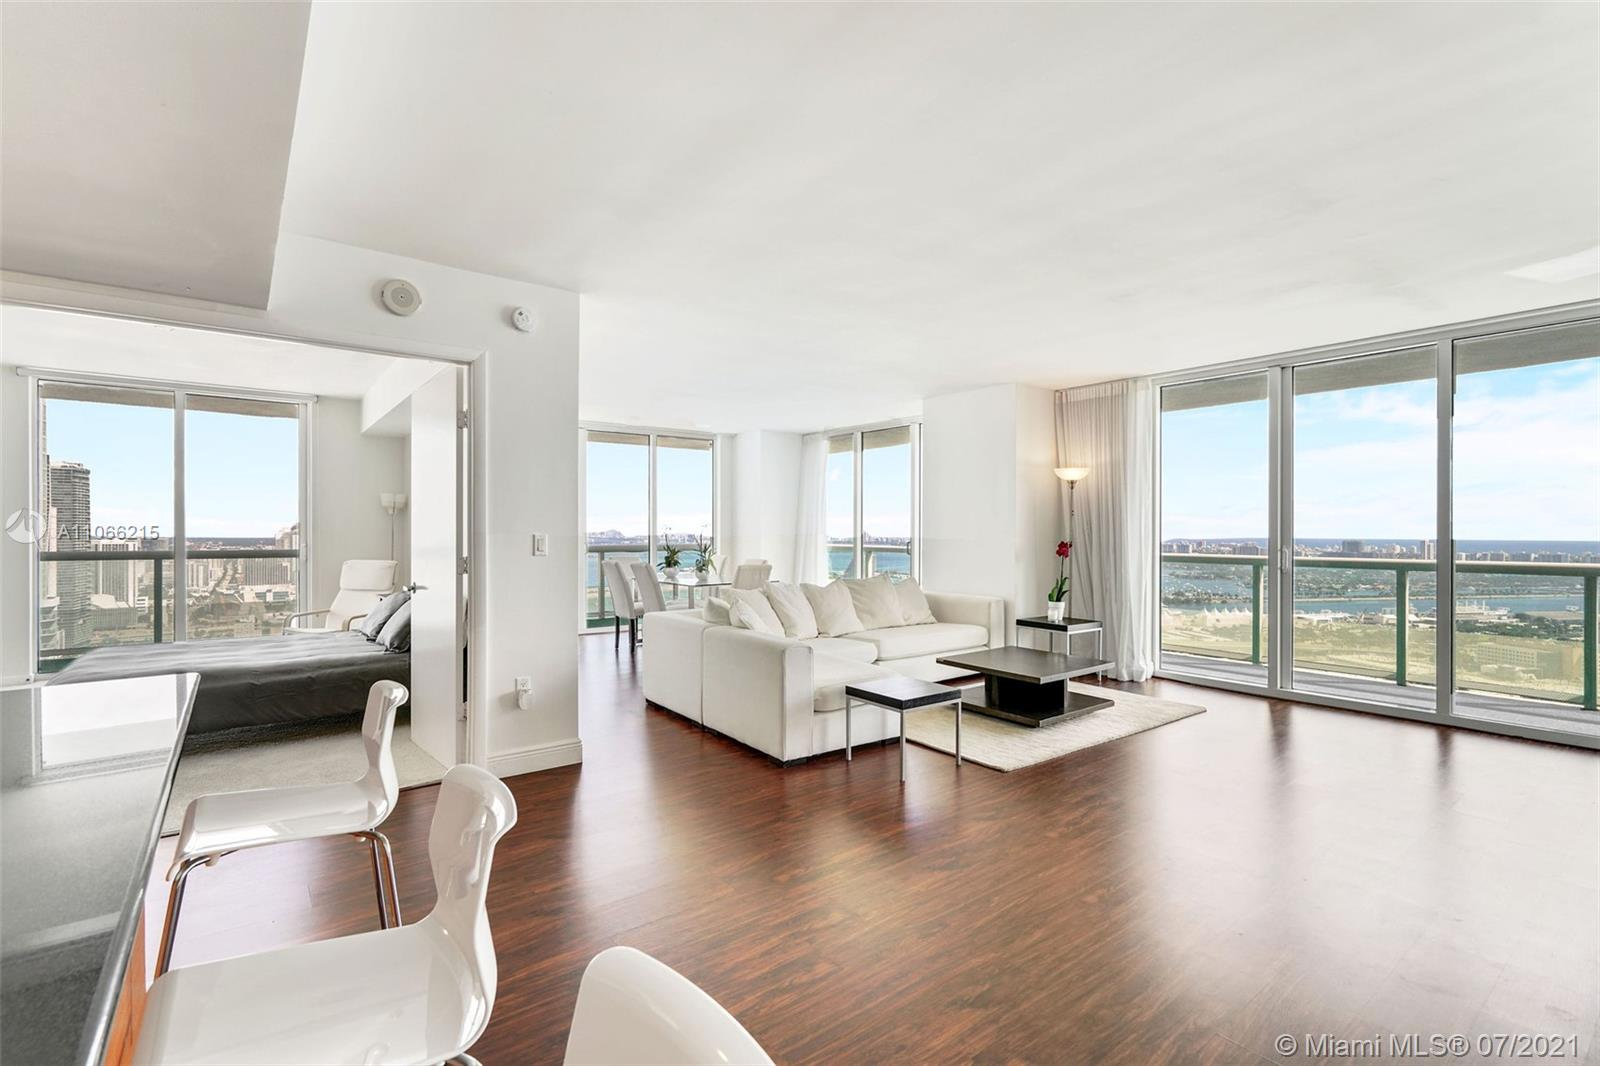 Absolutely stunning panoramic views from this spacious 3 bed, 2 bath corner w/wrap around glass balcony, located in one of Miami's finest condominiums. Floor to ceiling impact windows-views from every room,-overlooking the ocean, bay & Bayfront Park providing an abundance of natural light throughout the unit. Italian kitchen, granite countertops, marble bathrooms including large master w/separate whirlpool tub and glass shower & dual sinks, great closets including 4 walk-ins, & washer/dryer. Amenities include 24-hour doorman and concierge, state-of-the-art fitness center, valet parking, heated pool w/cabanas & jacuzzi, meditation room, spa, sauna & more. Great location- walking distance to shops, restaurants, arena, preforming arts center & Brickell.